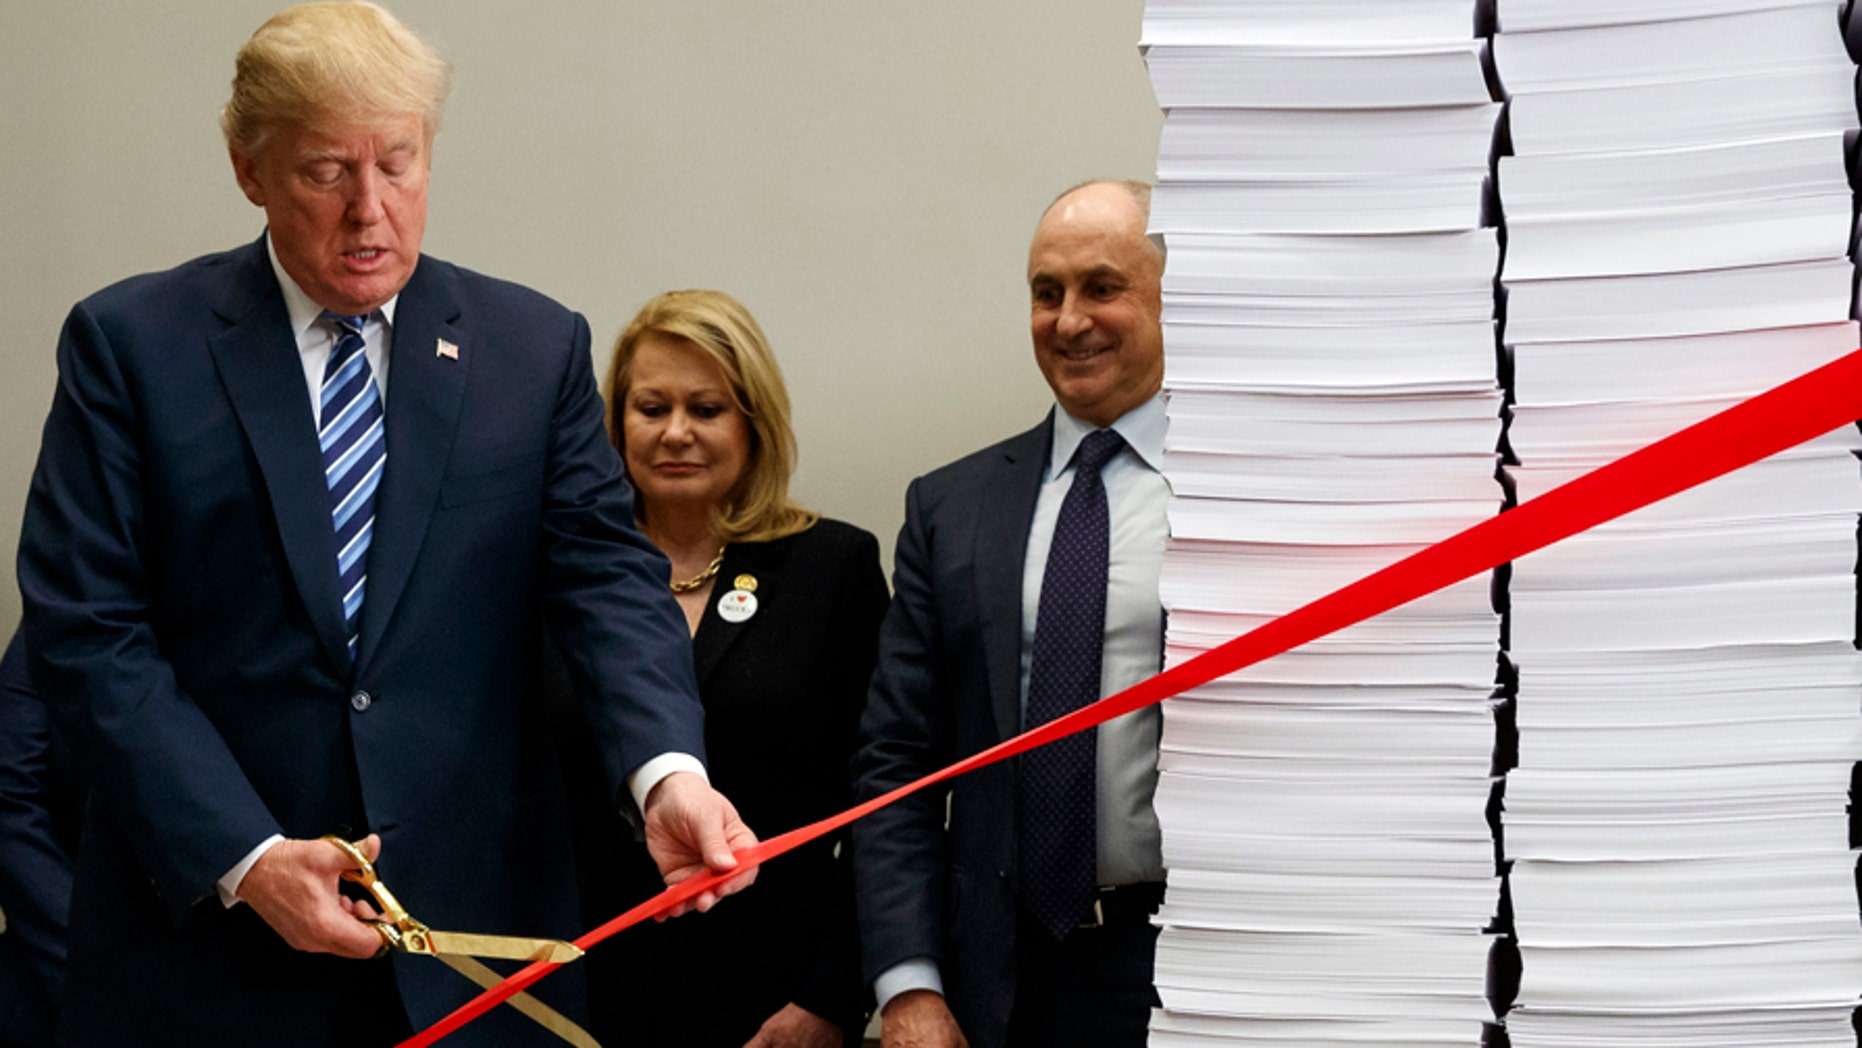 """President Donald Trump cuts a ribbon during an event on federal regulations in the Roosevelt Room of the White House, Thursday, Dec. 14, 2017, in Washington. """"Let's cut the red tape, let's set free our dreams,"""" Trump said as he symbolically cut a ribbon on stacks of paper representing the size of the regulatory code. (AP Photo/Evan Vucci)"""